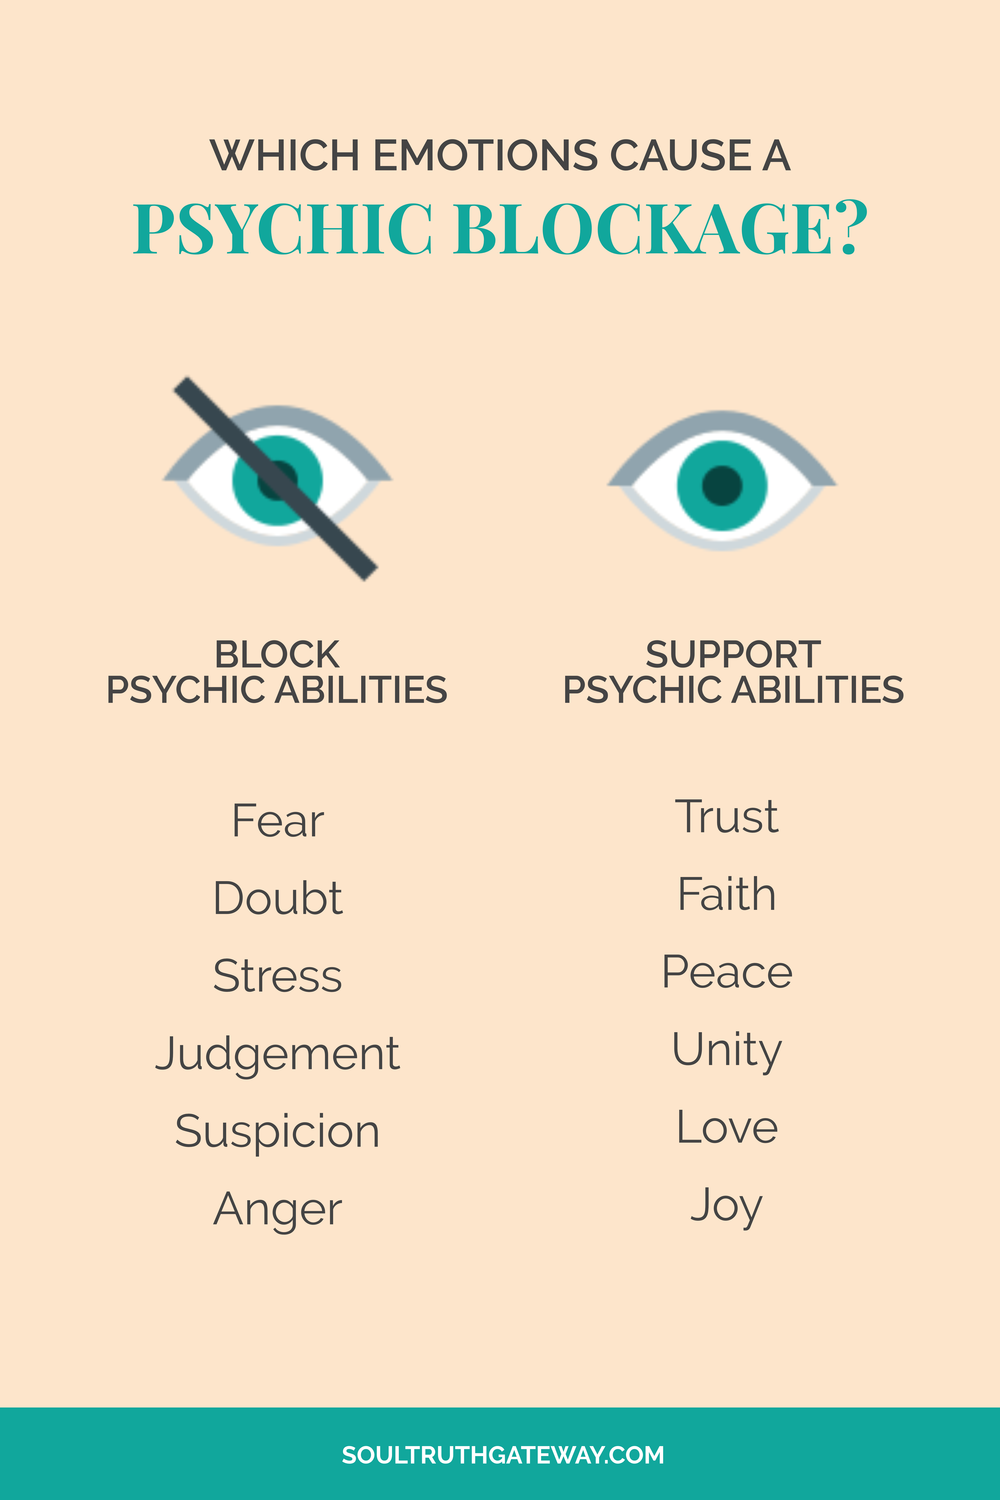 Which emotions cause a psychic blockage?